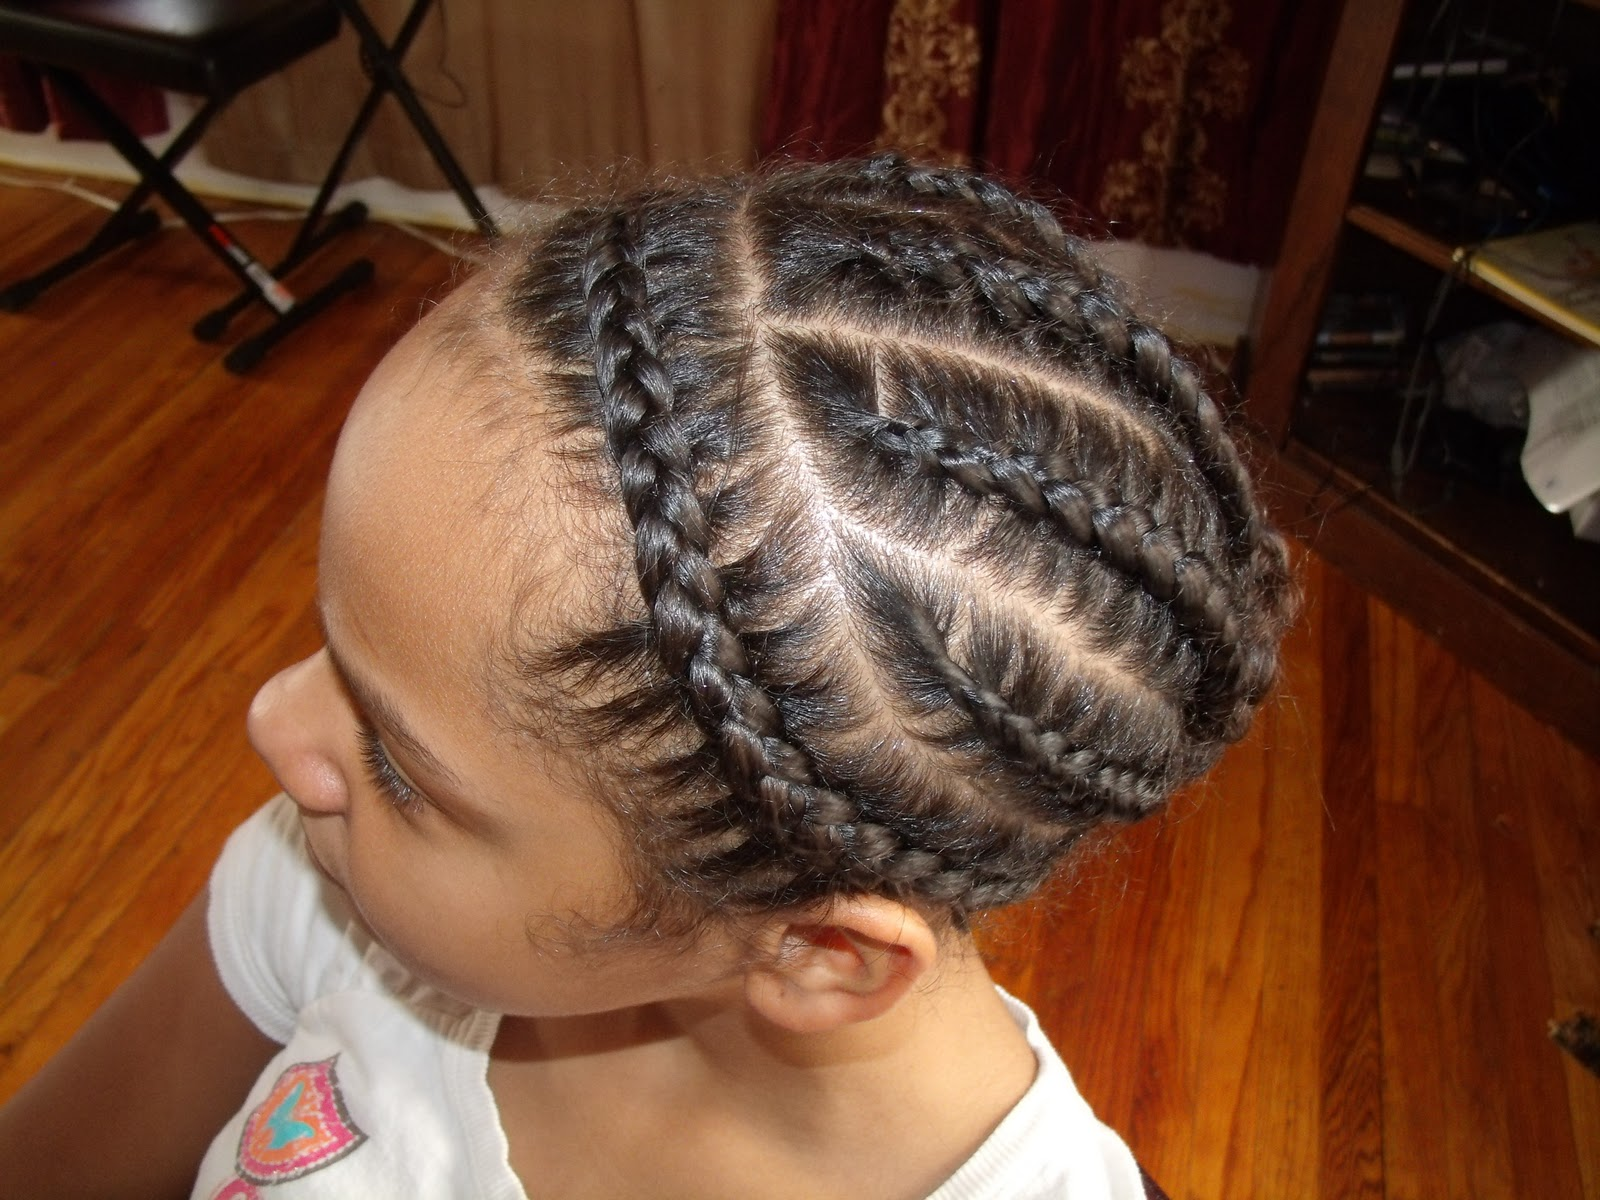 dirty blonde hairstyles : ... Curls: Cute protective hairstyle for tweens/teens/adults natural hair